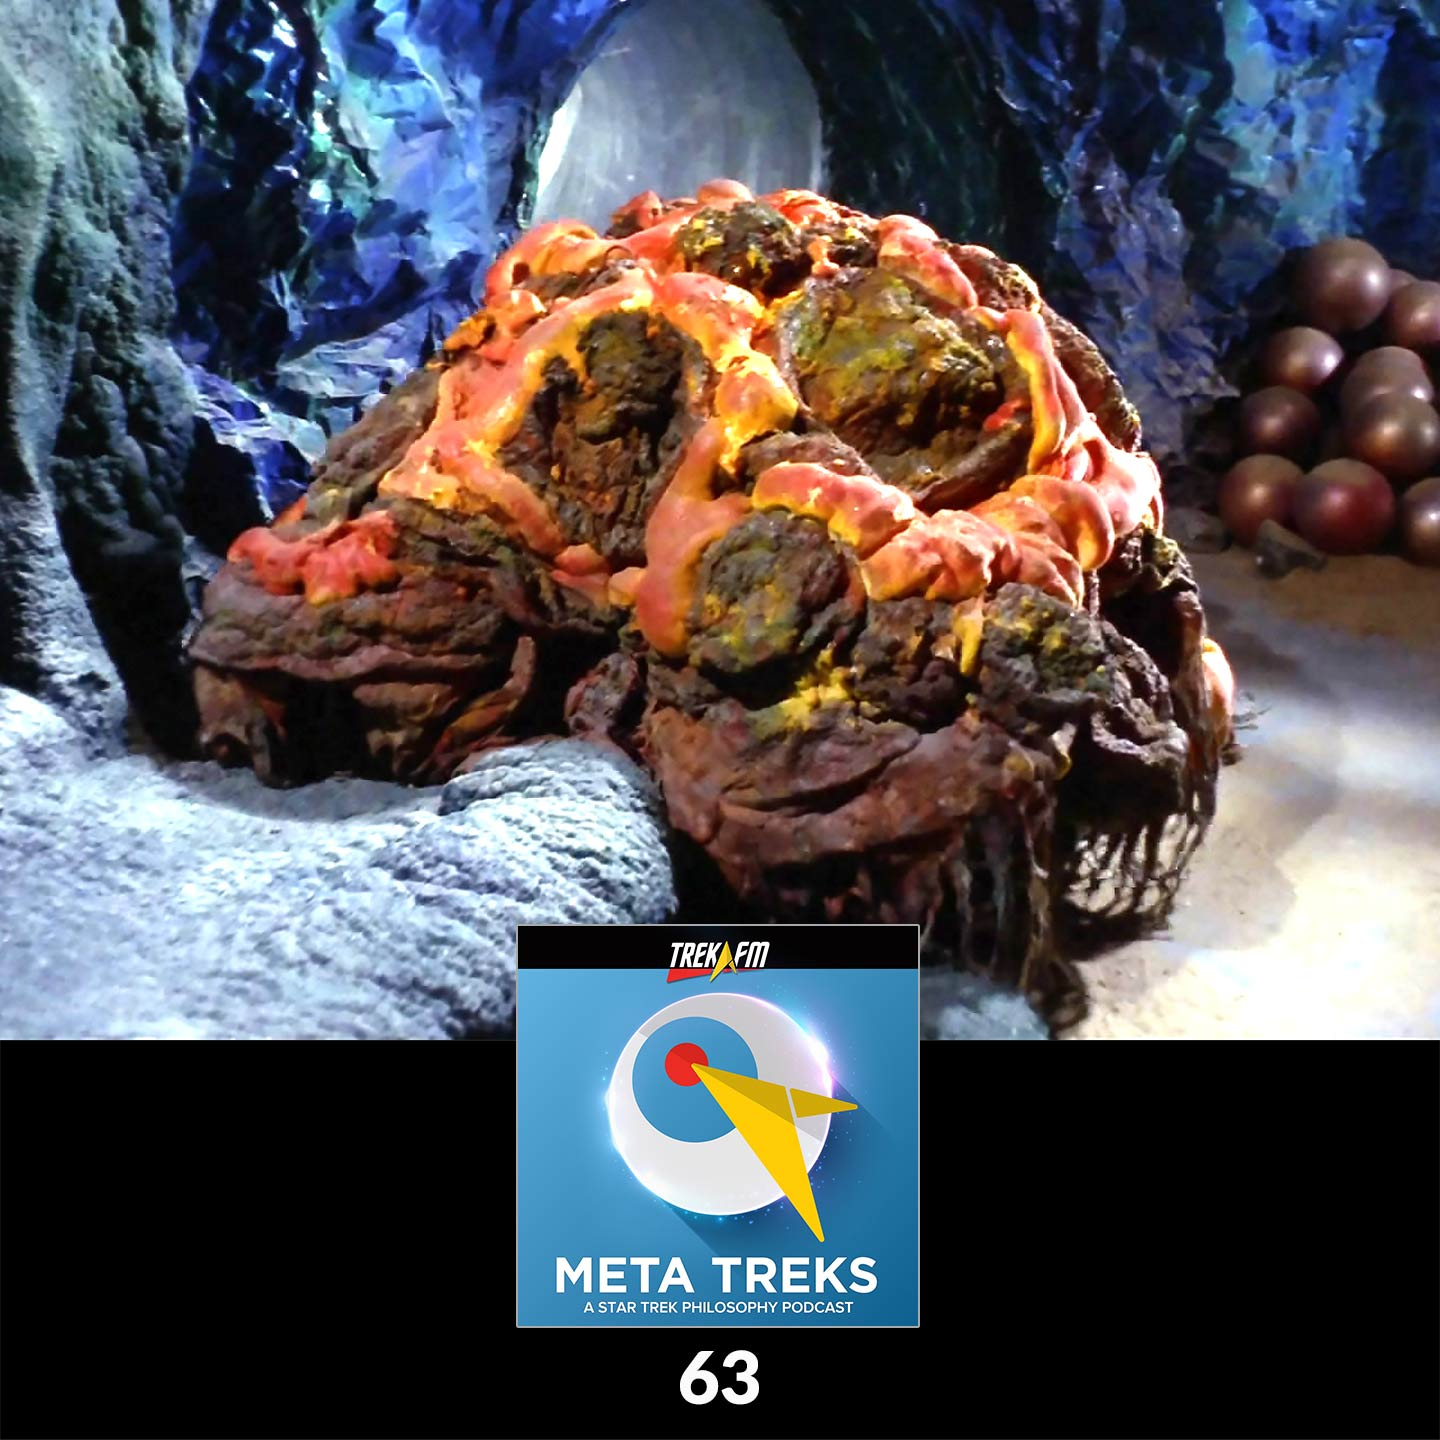 Meta Treks 63: Ugly Bags of Mostly Silicon - The Definition of Life.